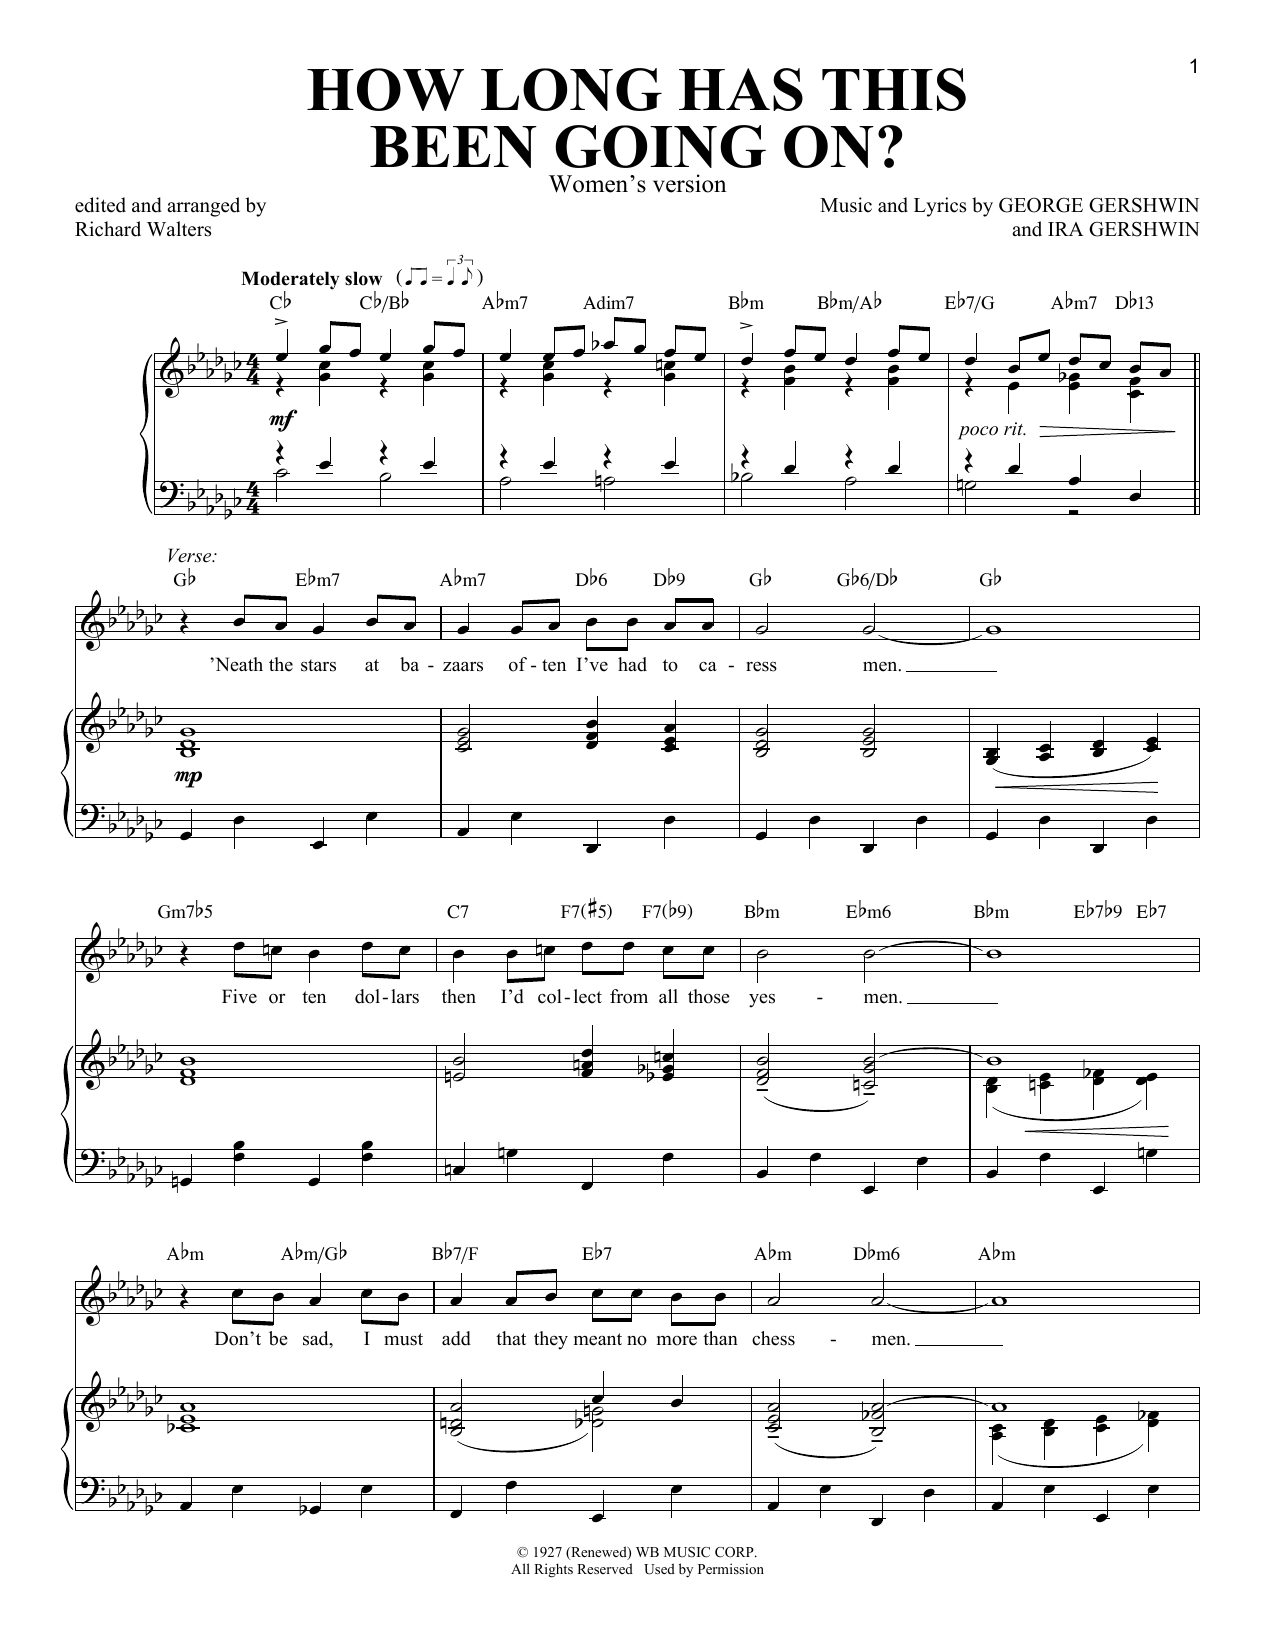 How Long Has This Been Going On? [Women's version] (Piano & Vocal)